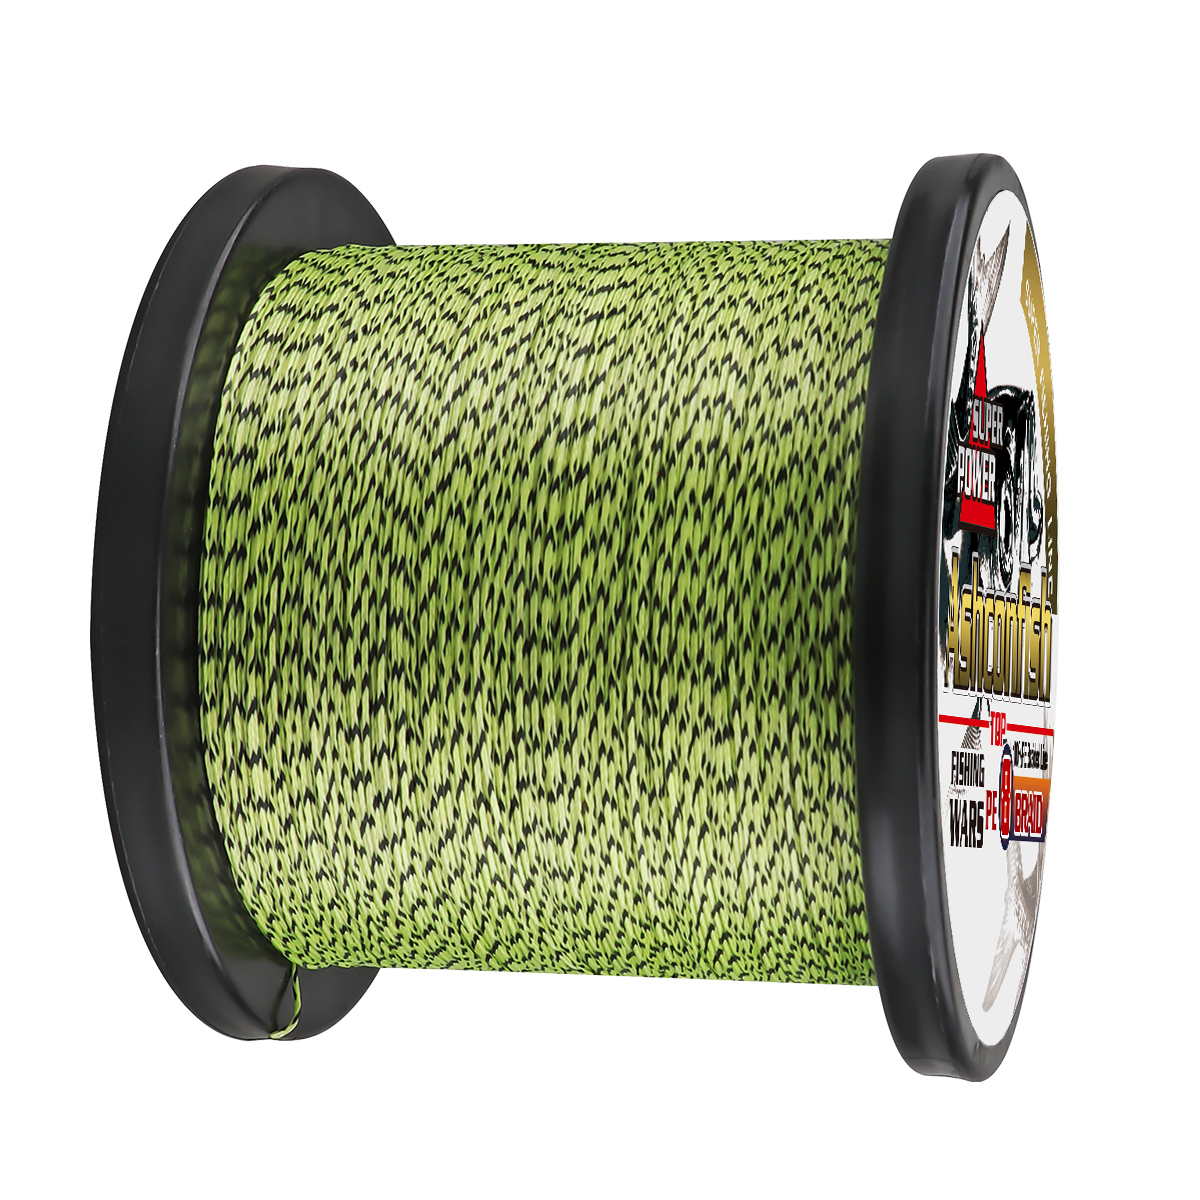 Fishing line 1500m 2000M super pe 8 Strands spot line mix color braided line fishing wire strong cord 8-300LBS 0.12  0.8 1.0mm